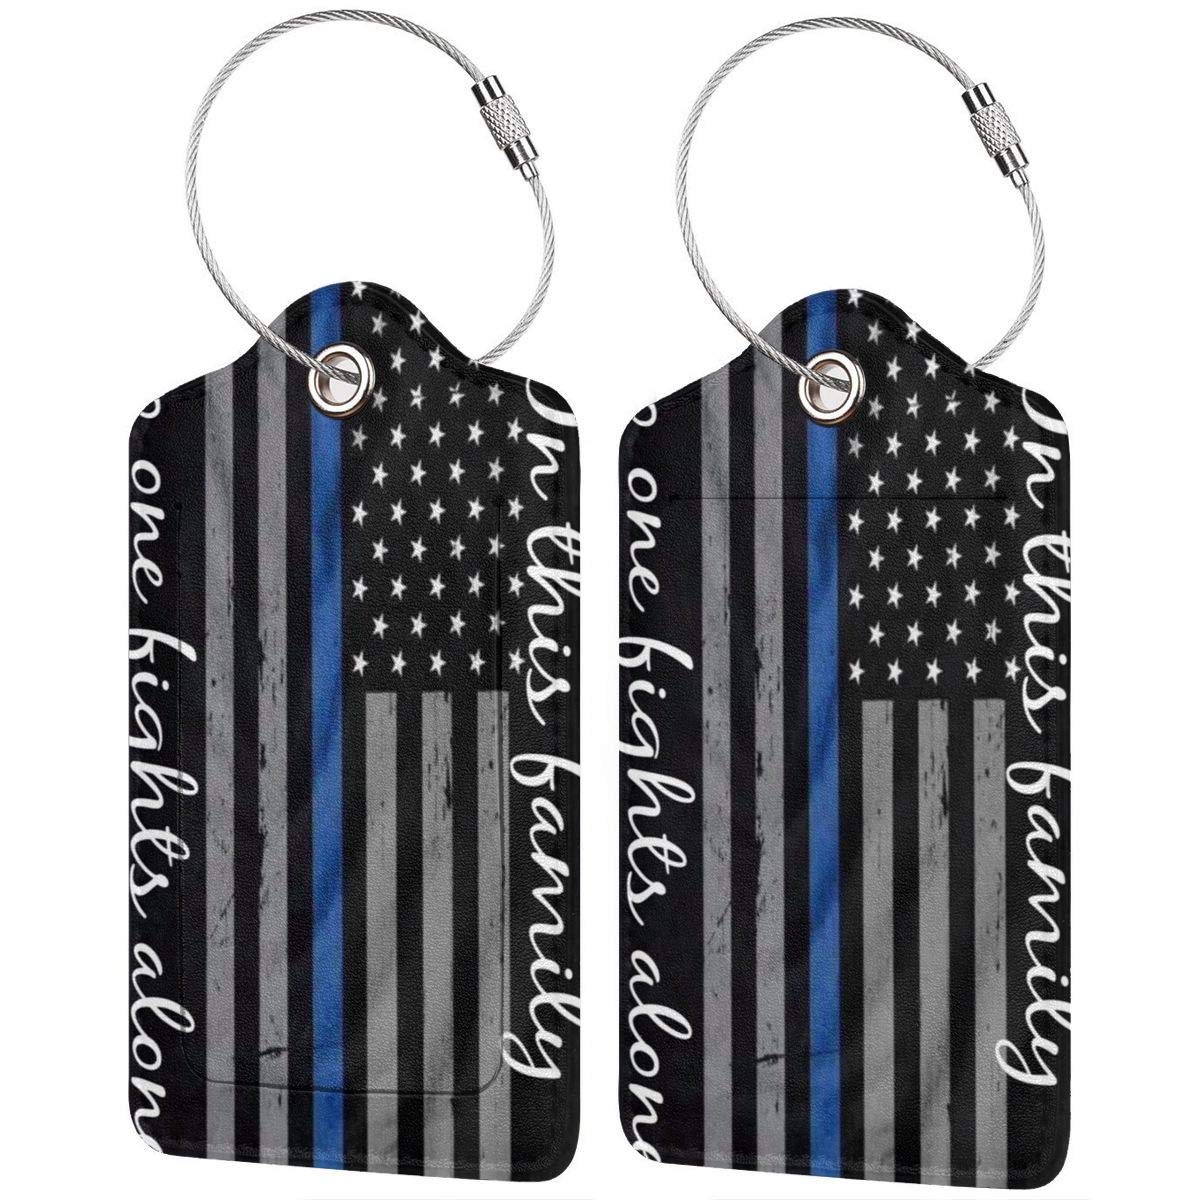 Police Blue Thin Line Leather Luggage Tags Baggage Bag Instrument Tag Travel Labels Accessories with Privacy Cover